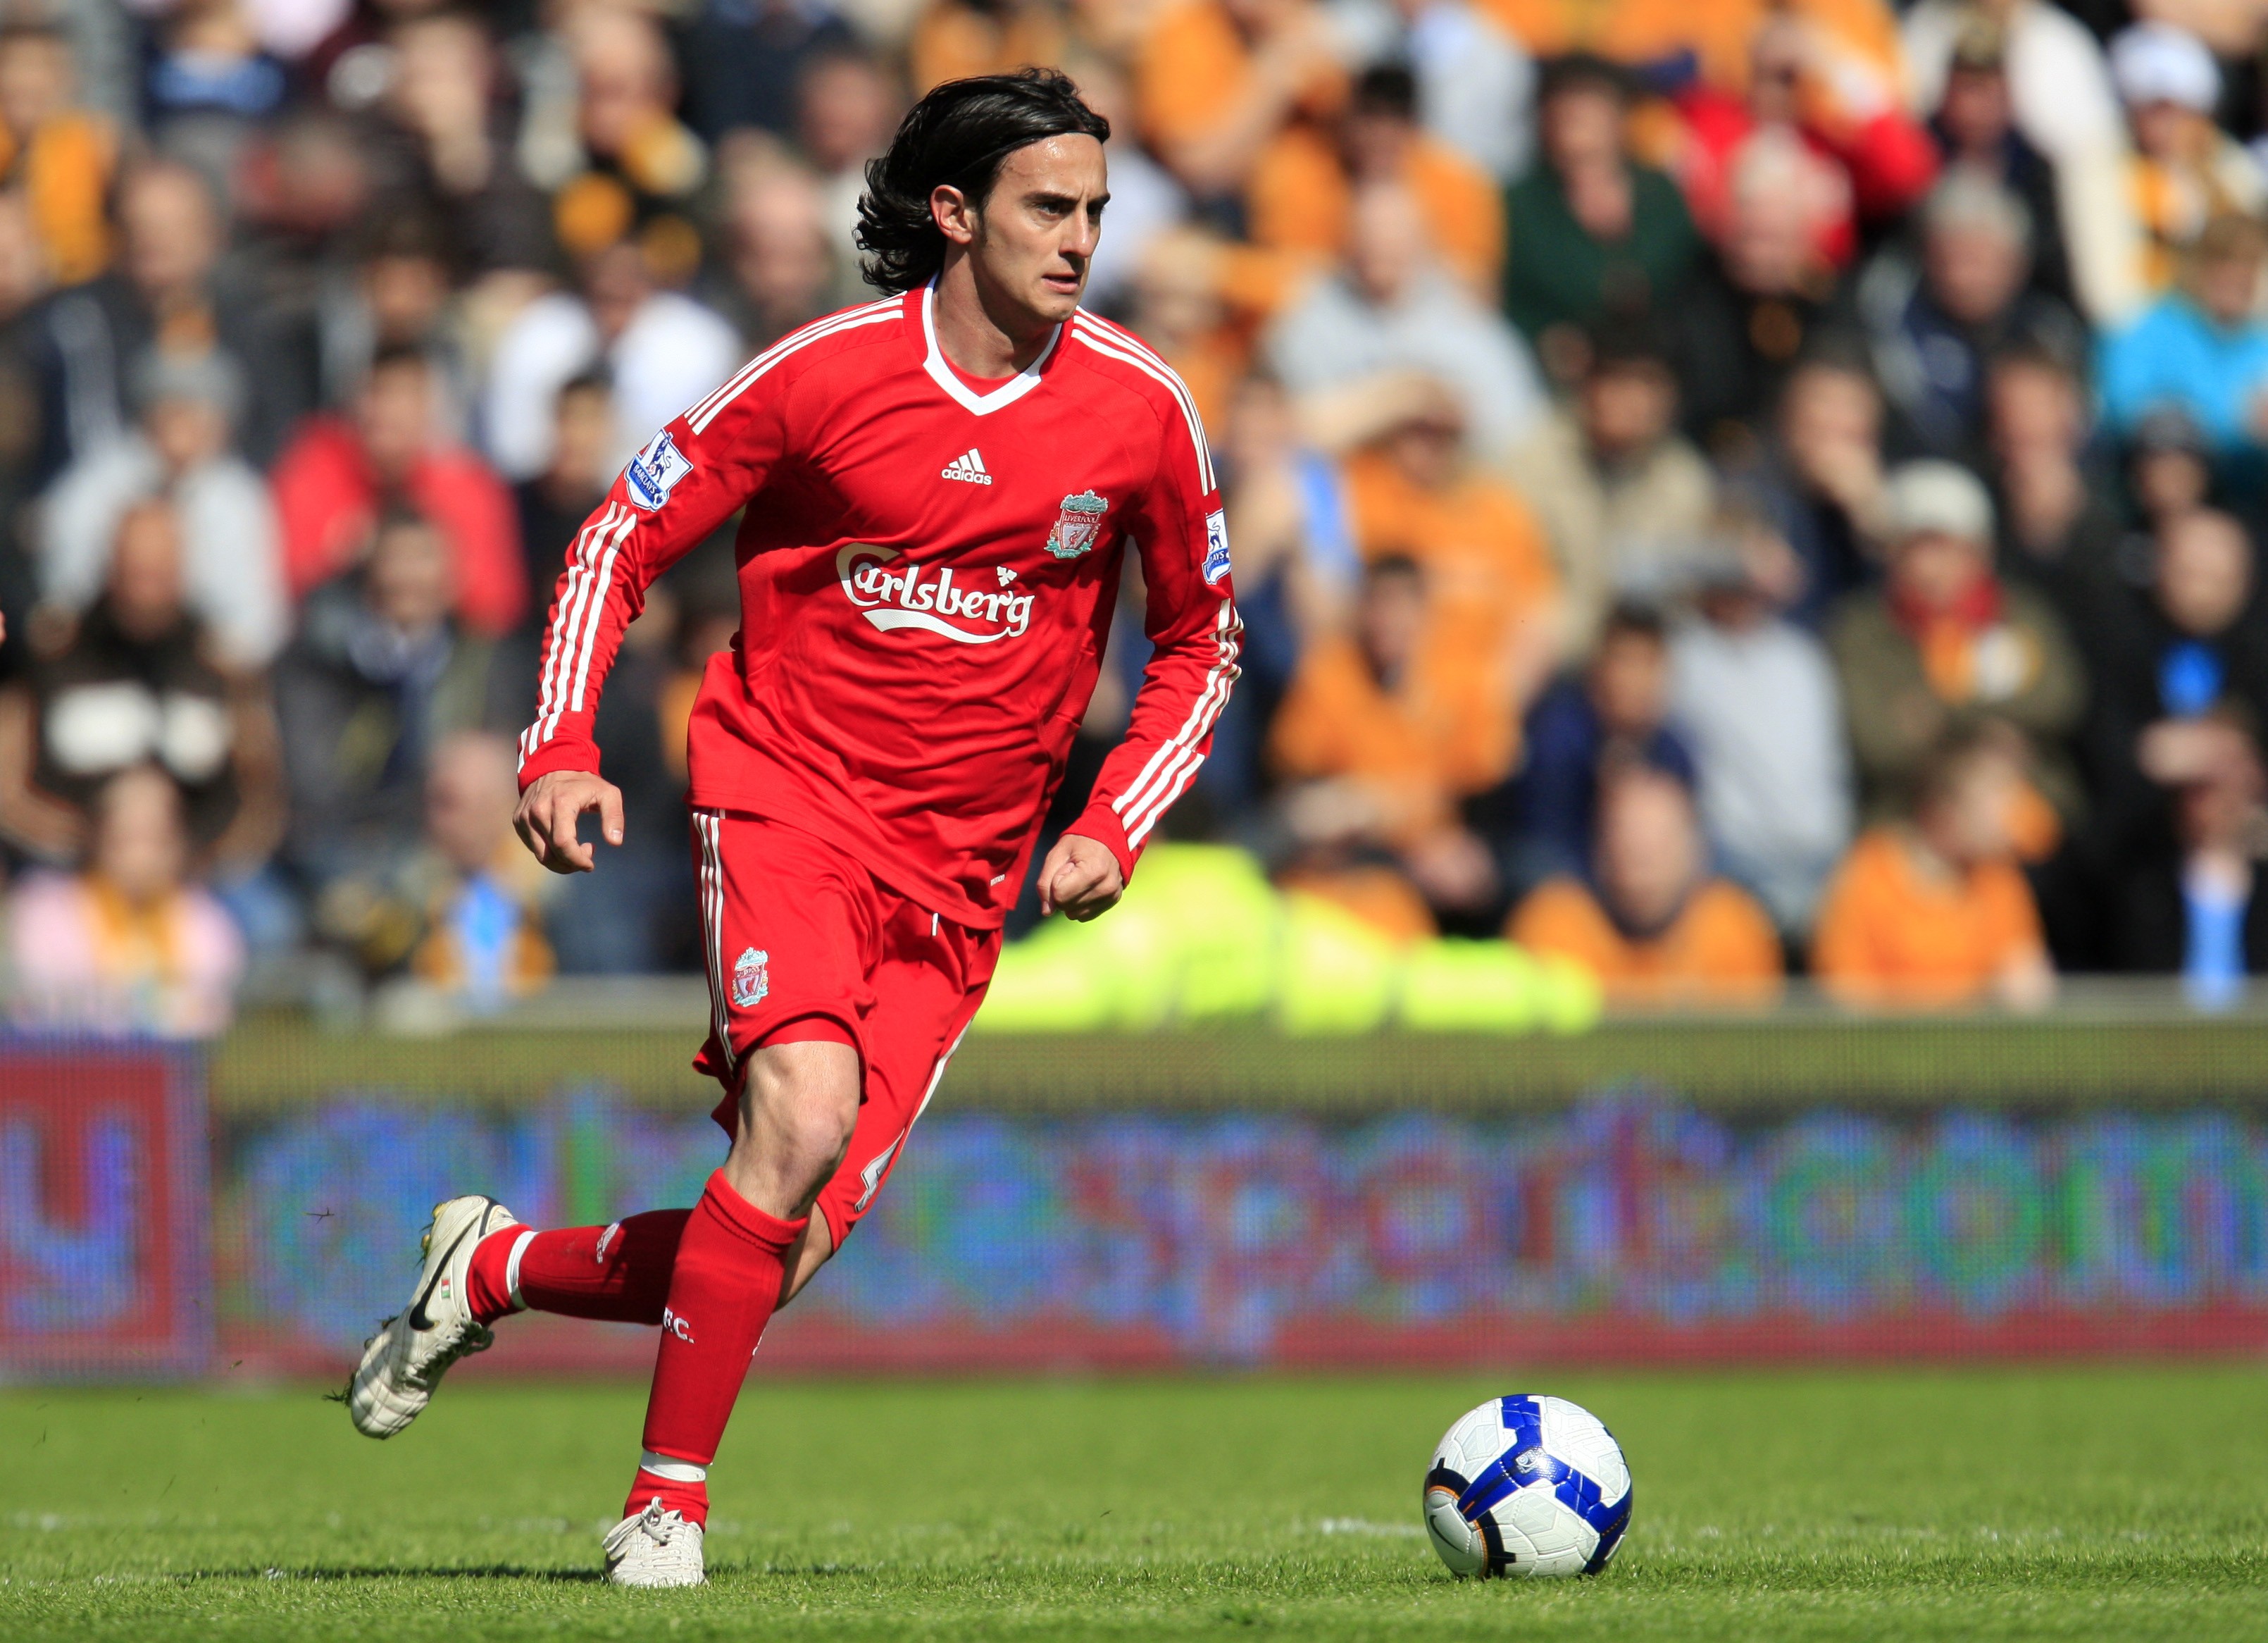 HULL, ENGLAND - MAY 9:  Alberto Aquilani of Liverpool during the Barclays Premier League match between Hull City and Liverpool at the KC Stadium on May 9, 2010 in Hull, England. (Photo by Jed Leicester/Getty Images)